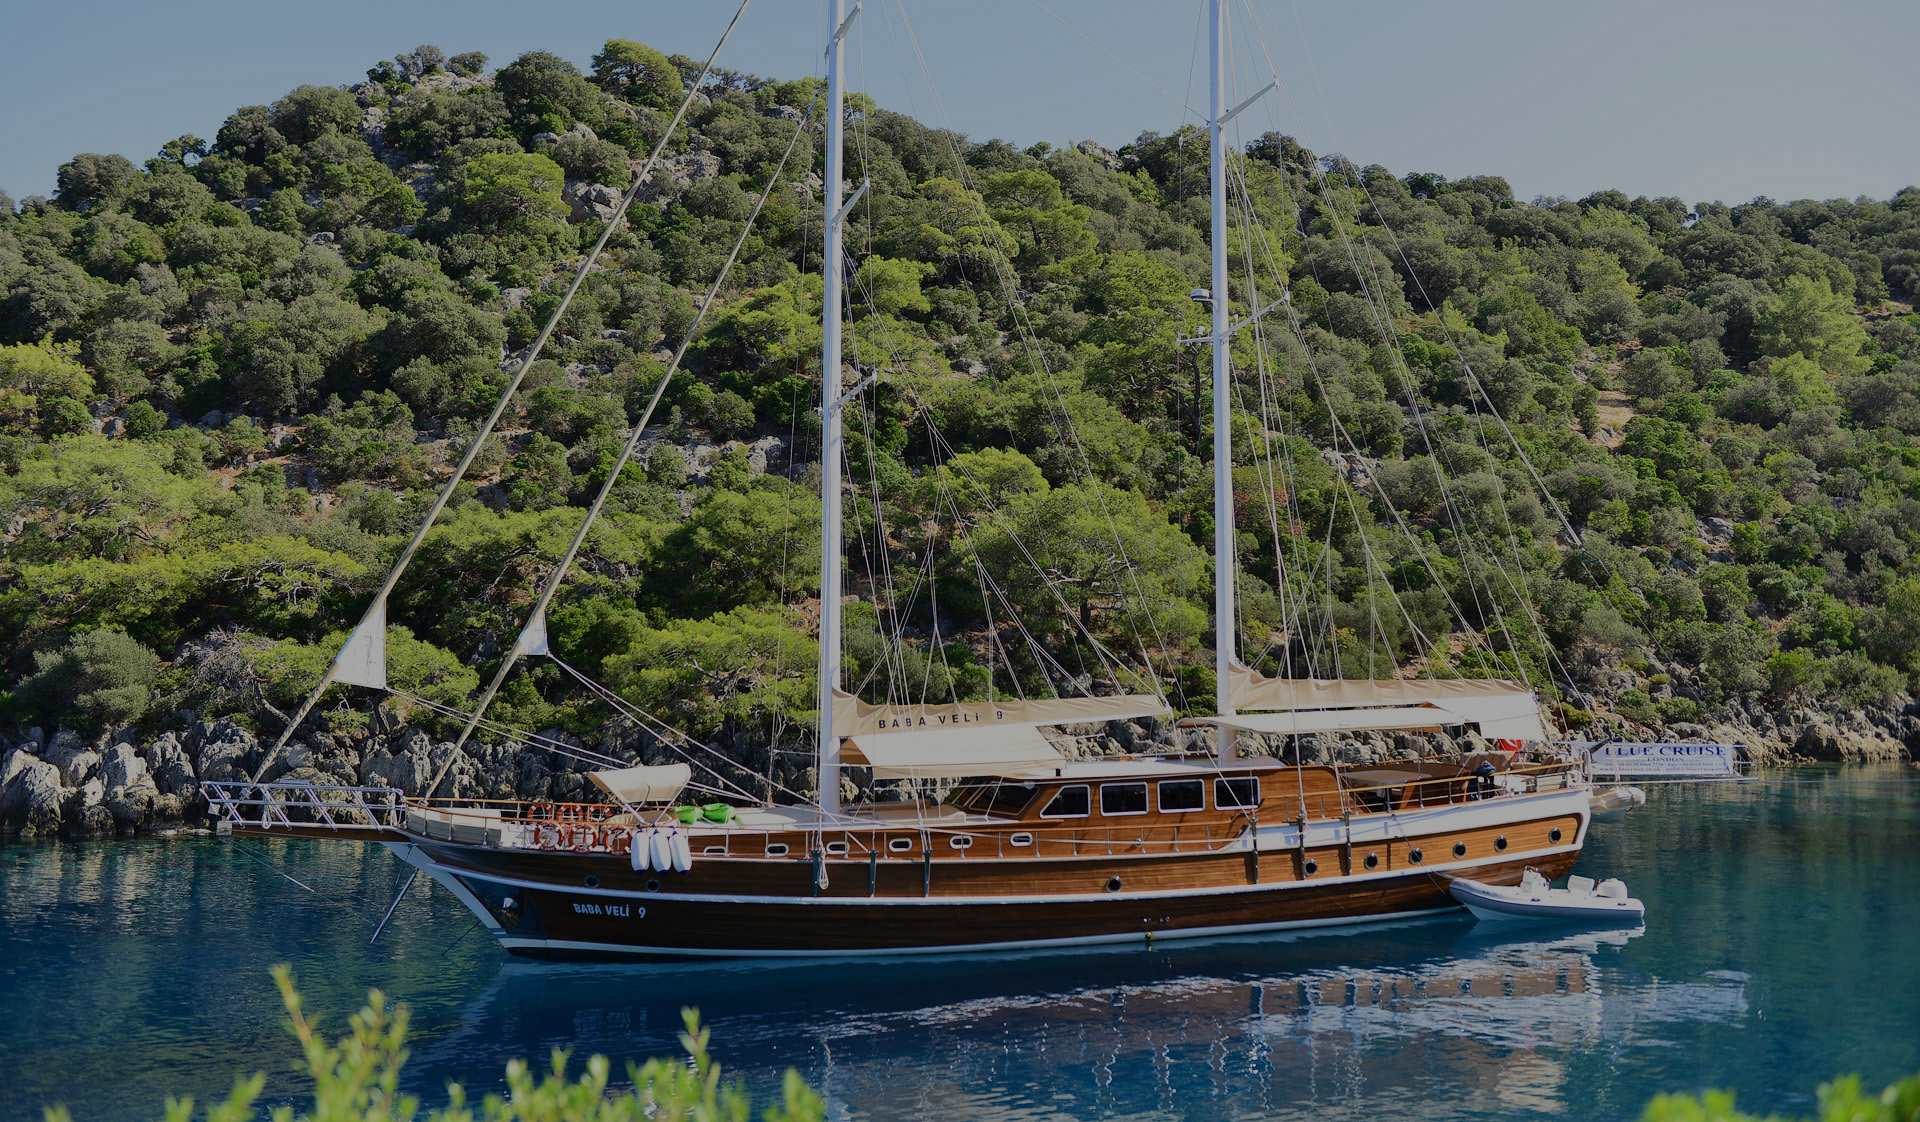 PRIVATE CHARTER - SCROLL THROUGH our list of Gulets availablein Turkey for shared and private cruising.Private hire prices from £6,000 per week.